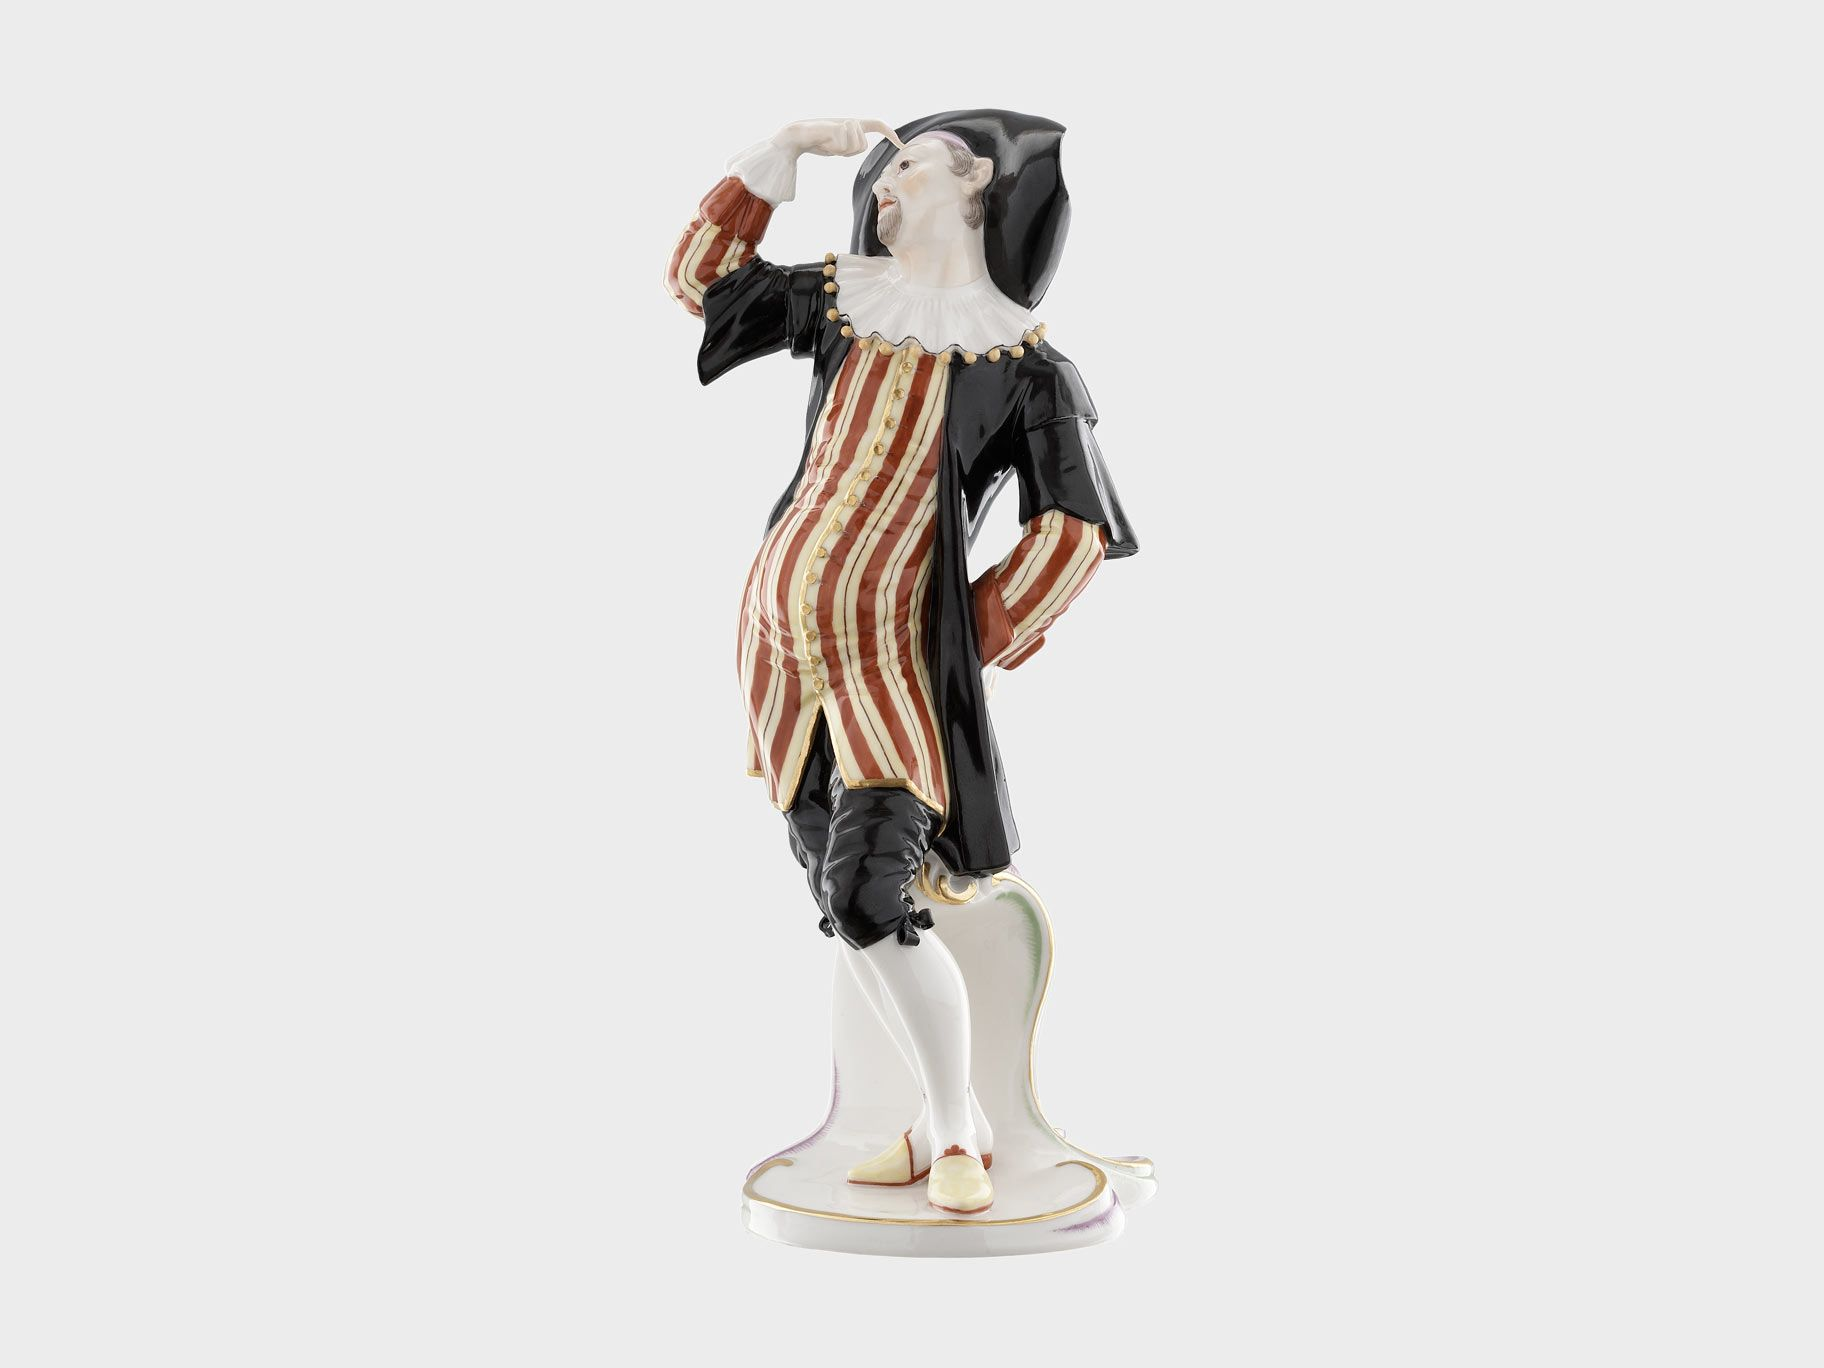 Dottore, Commedia dell'Arte by Franz Anton Bustelli, porcelain glazed, coloured by hand, 1754